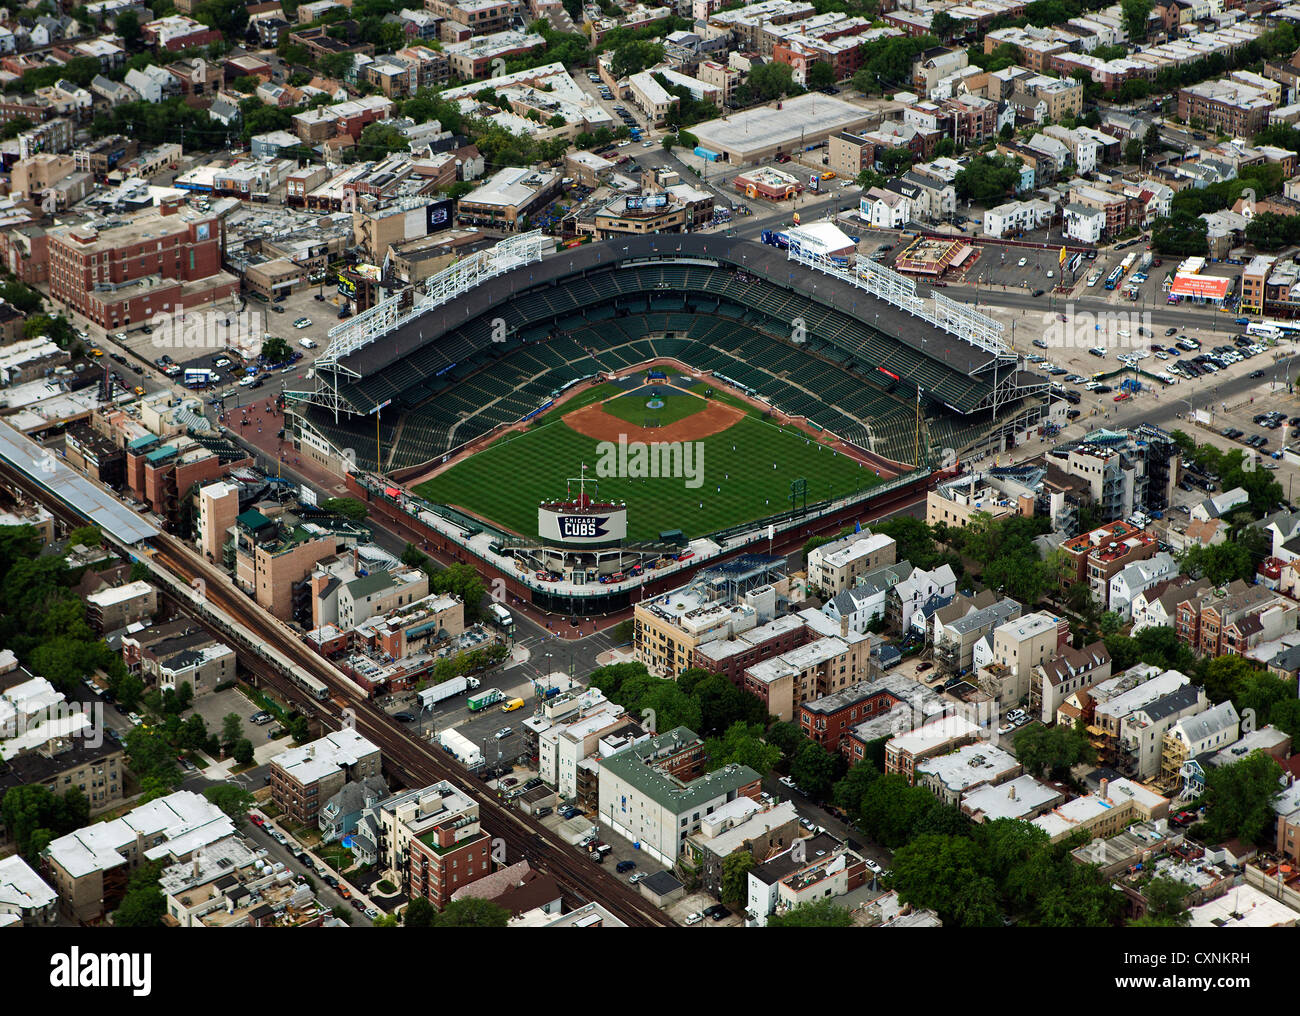 aerial photograph Wrigley Field, Chicago, Illinois - Stock Image